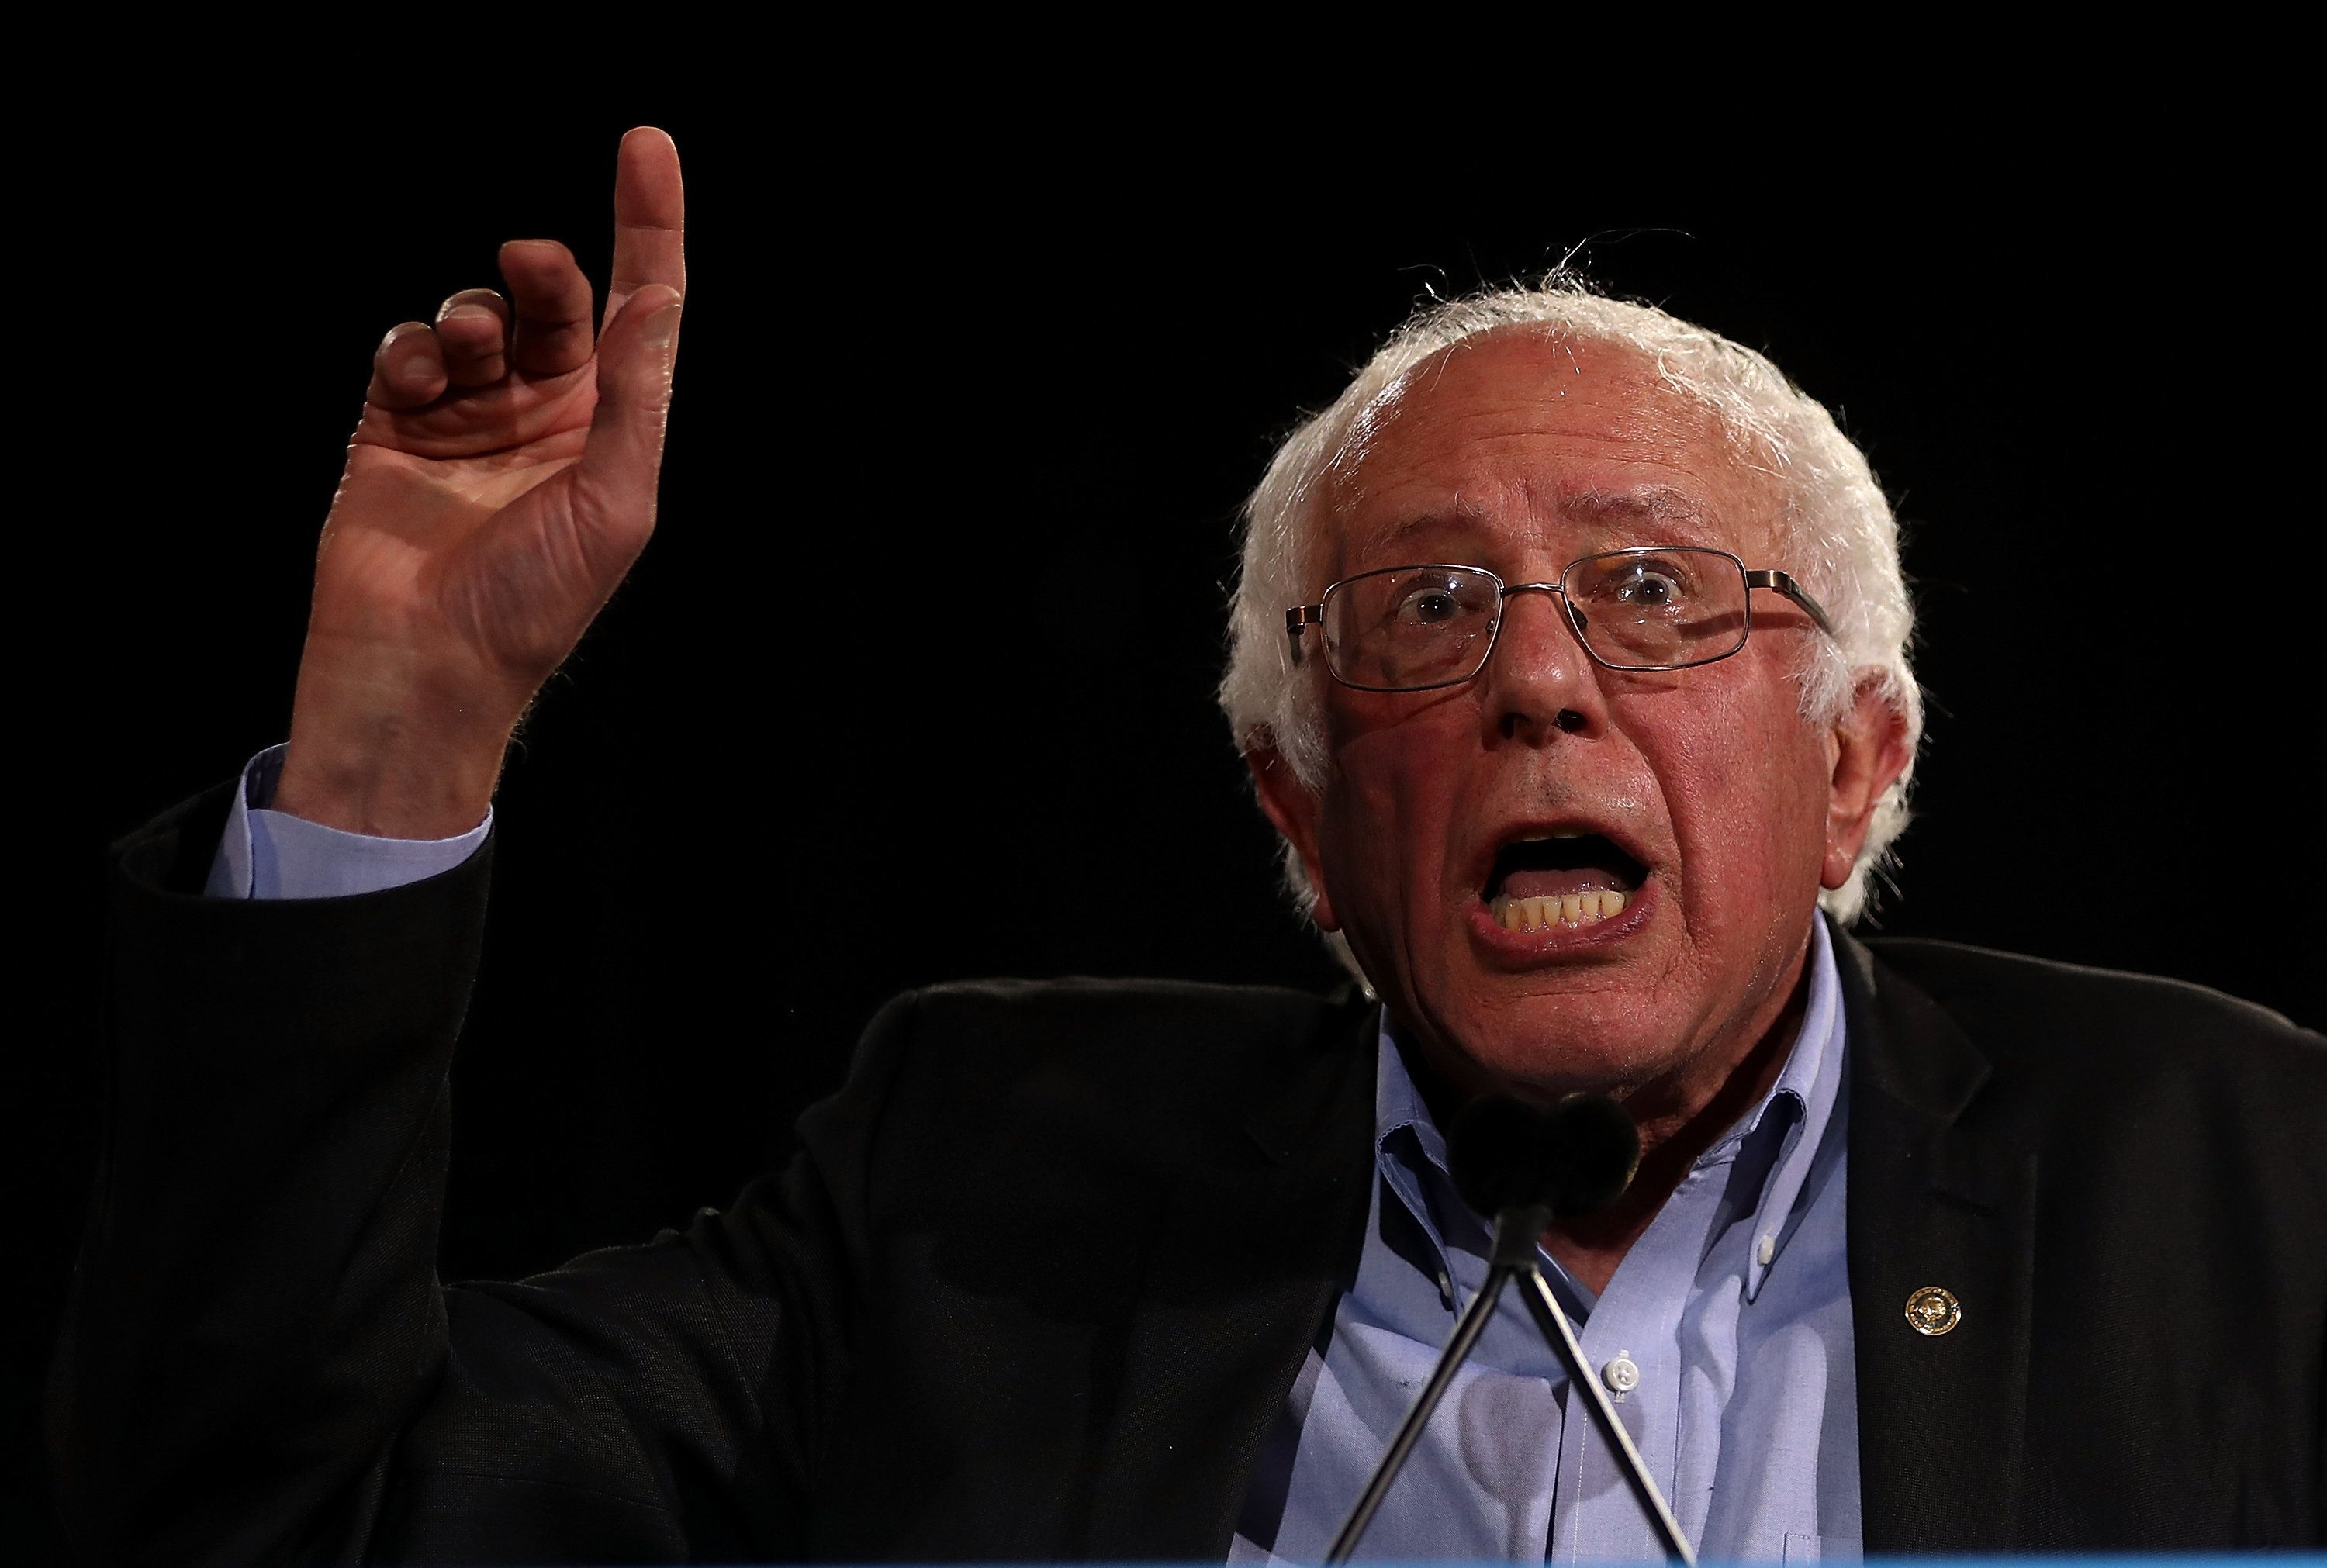 Sen. Bernie Sanders (I-Vt.) ran his Democratic primary campaign on themes of income equality and policies aimed at helping th